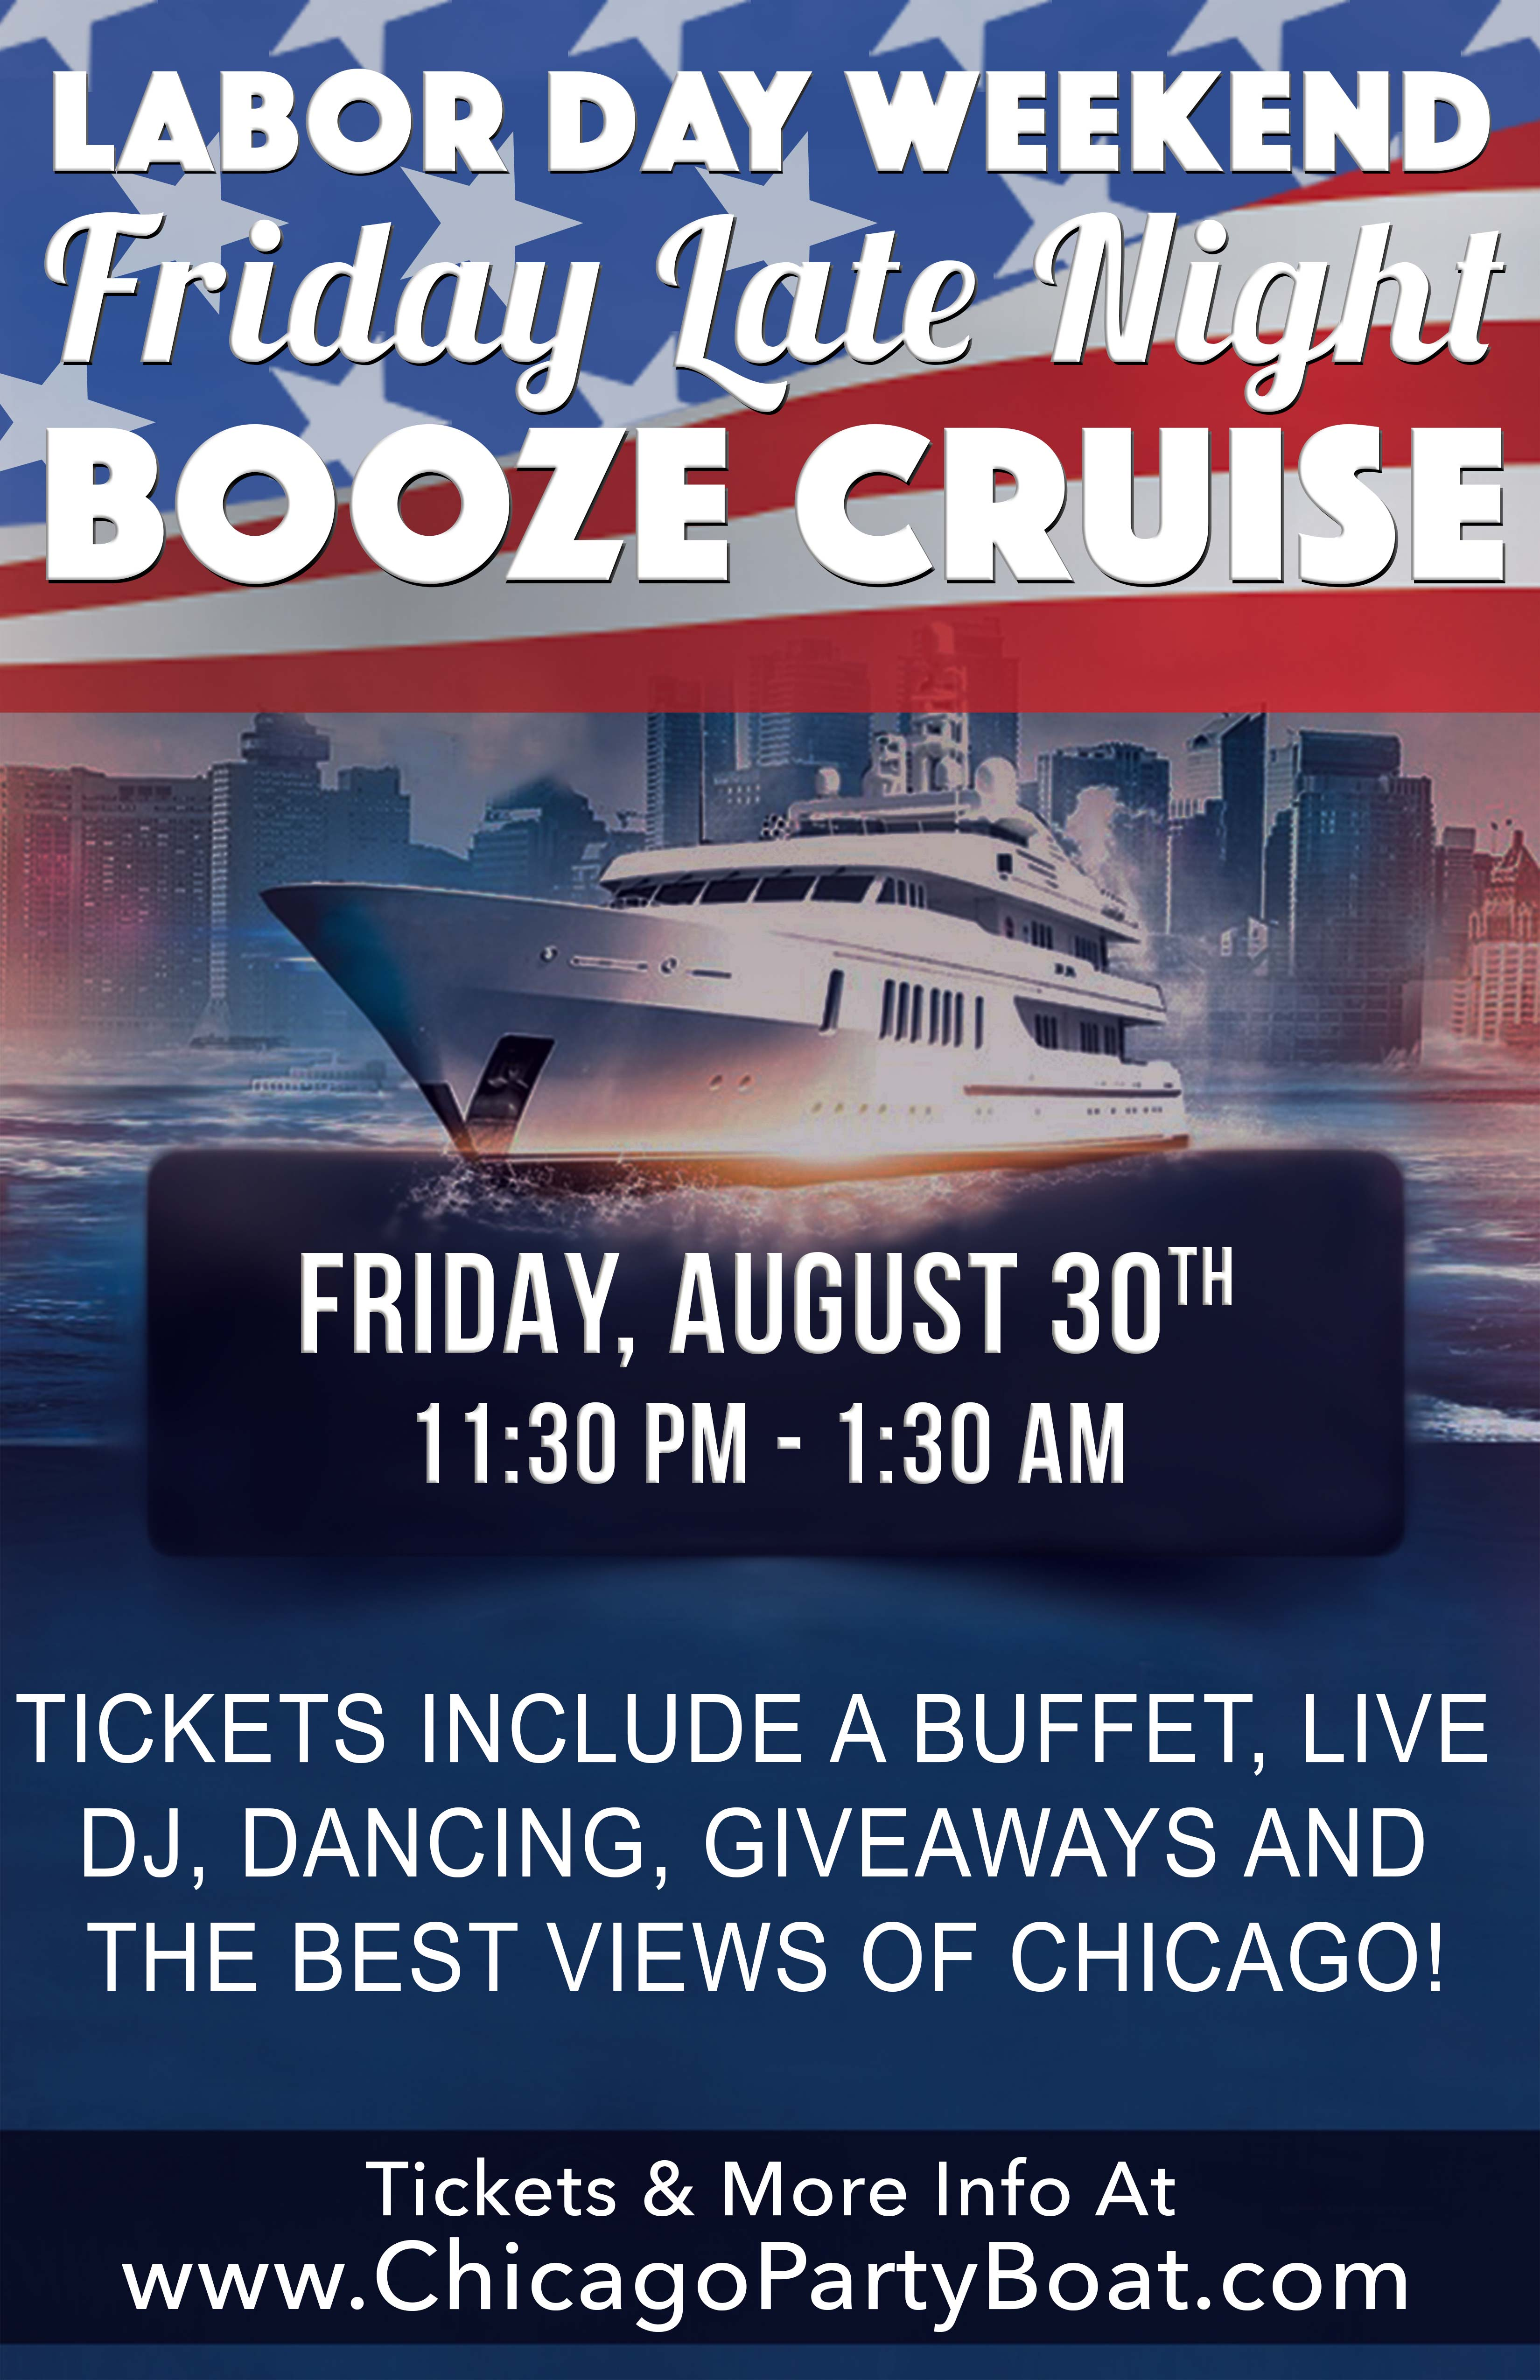 Labor Day Weekend Friday Late Night Booze Cruise Party - Tickets include a Buffet, Live DJ, Dancing, Giveaways, and the best views of Chicago!